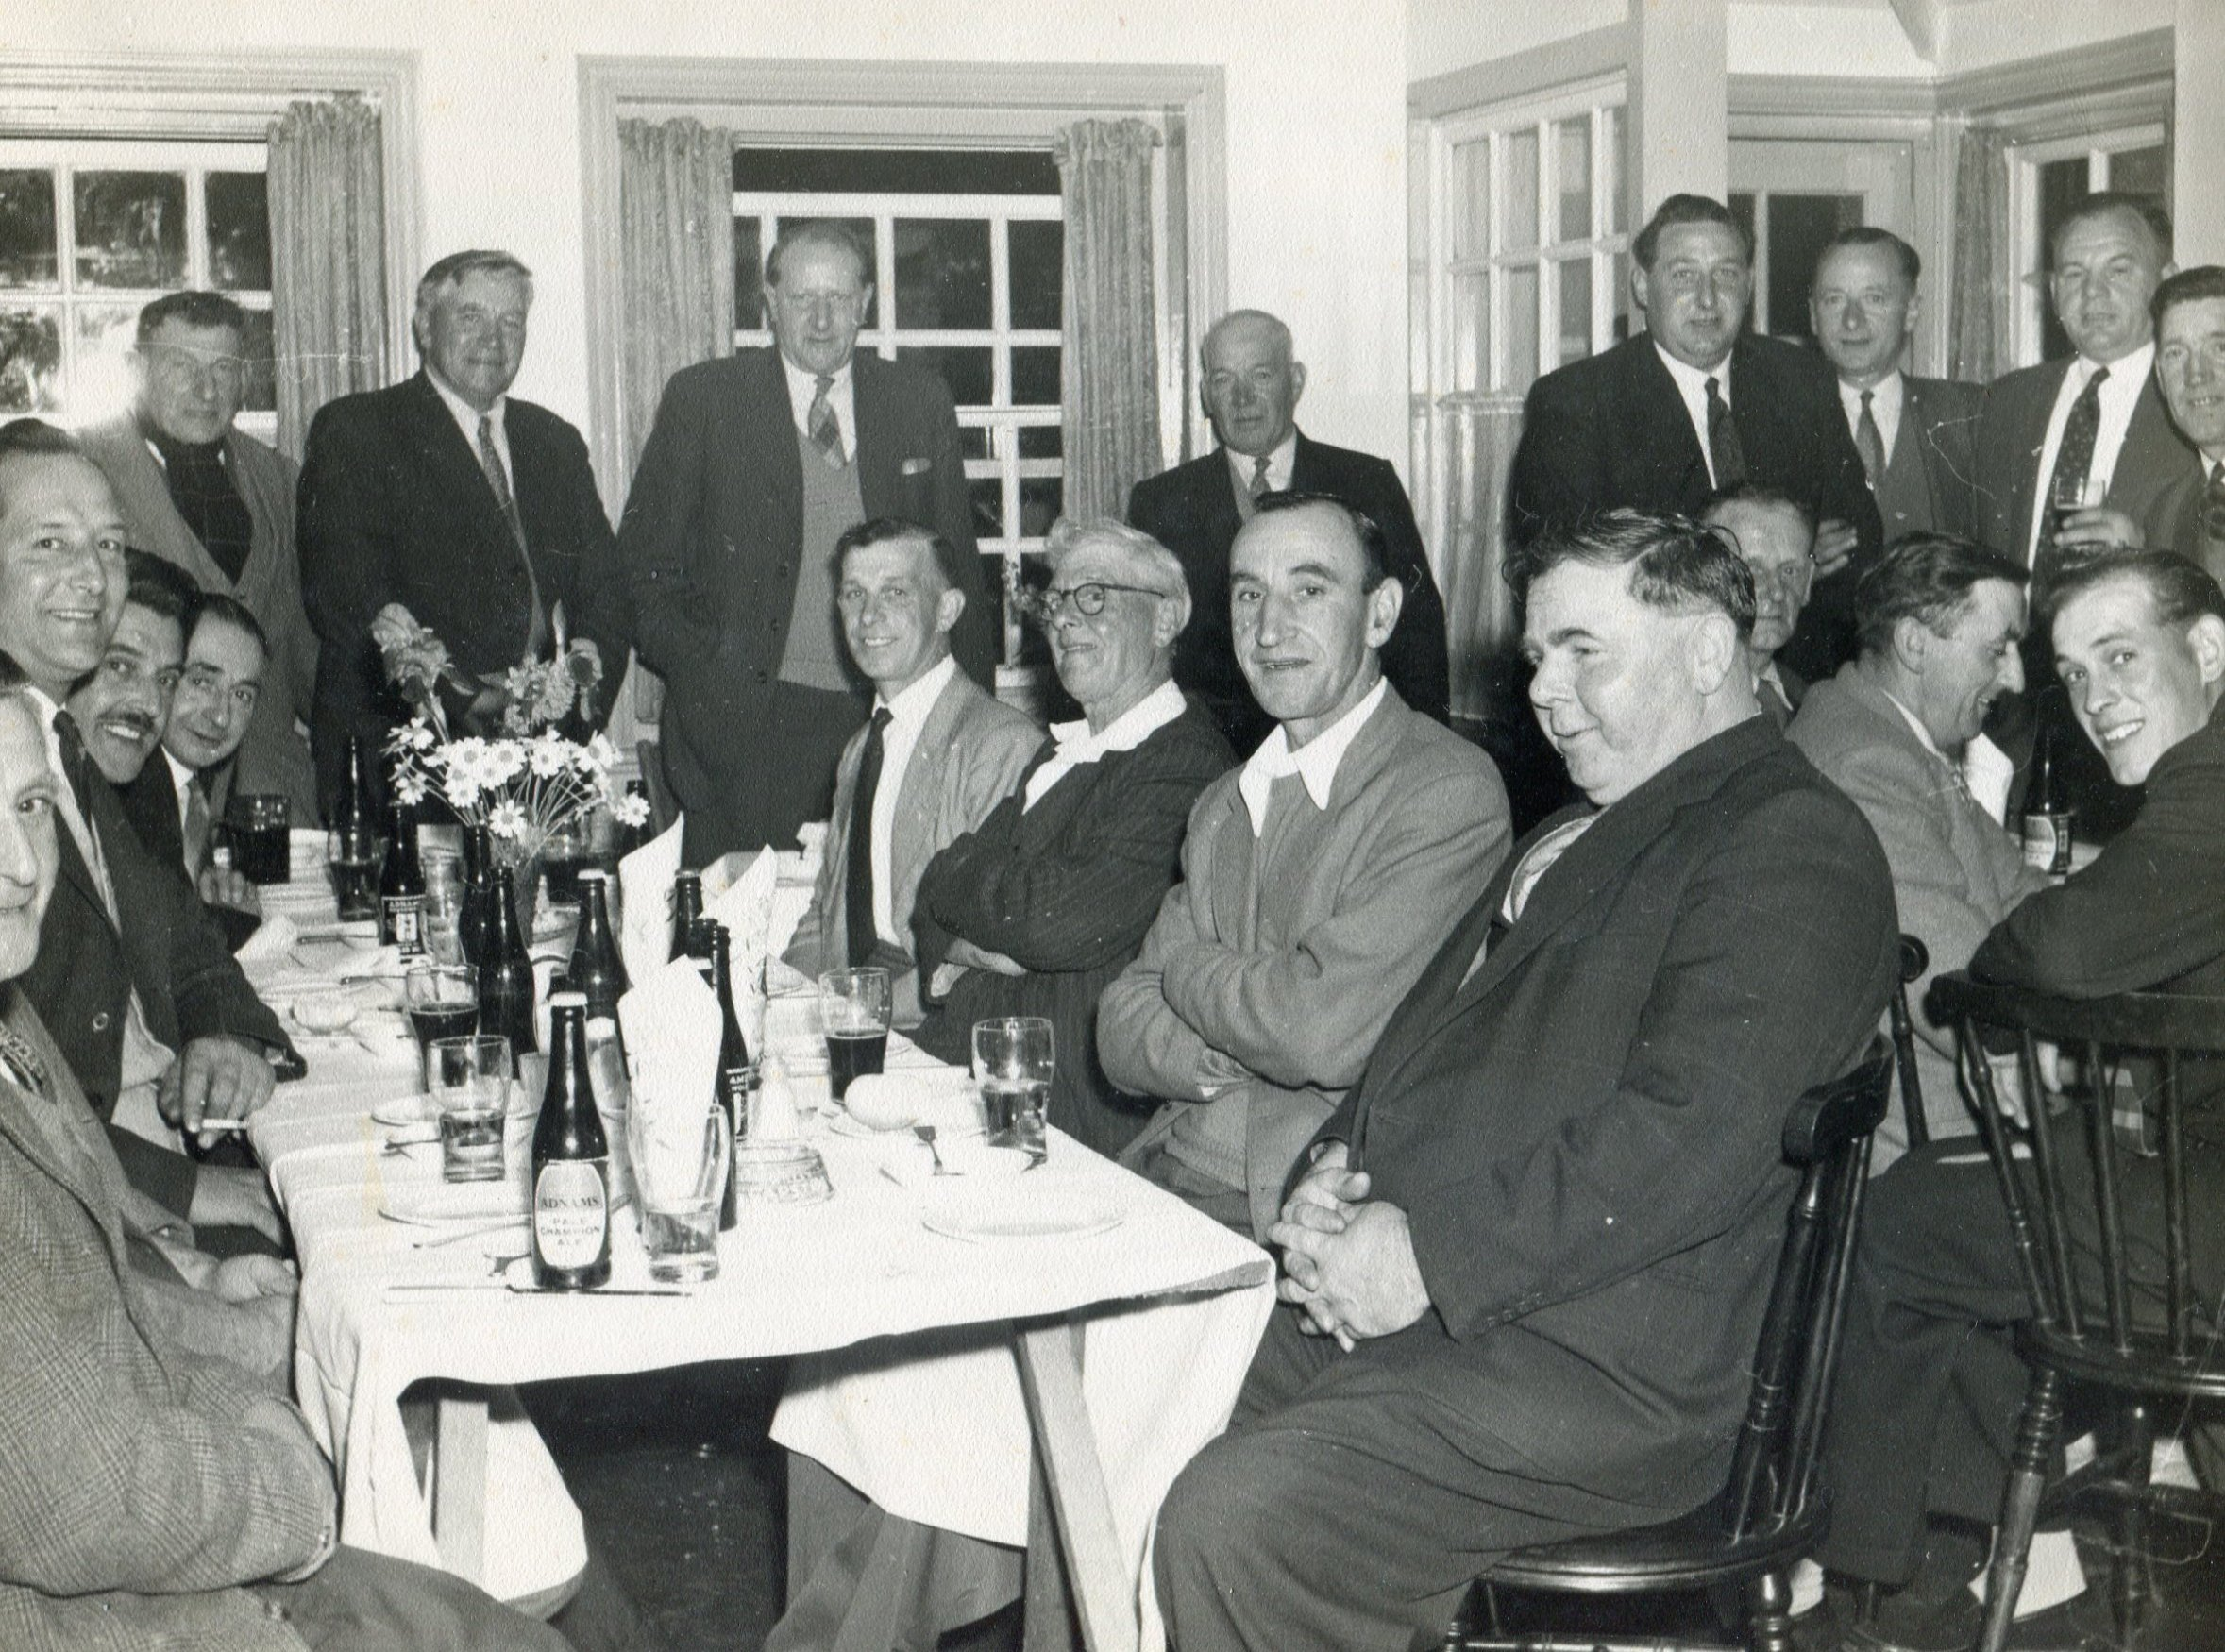 Railway inn dinner, c.1956